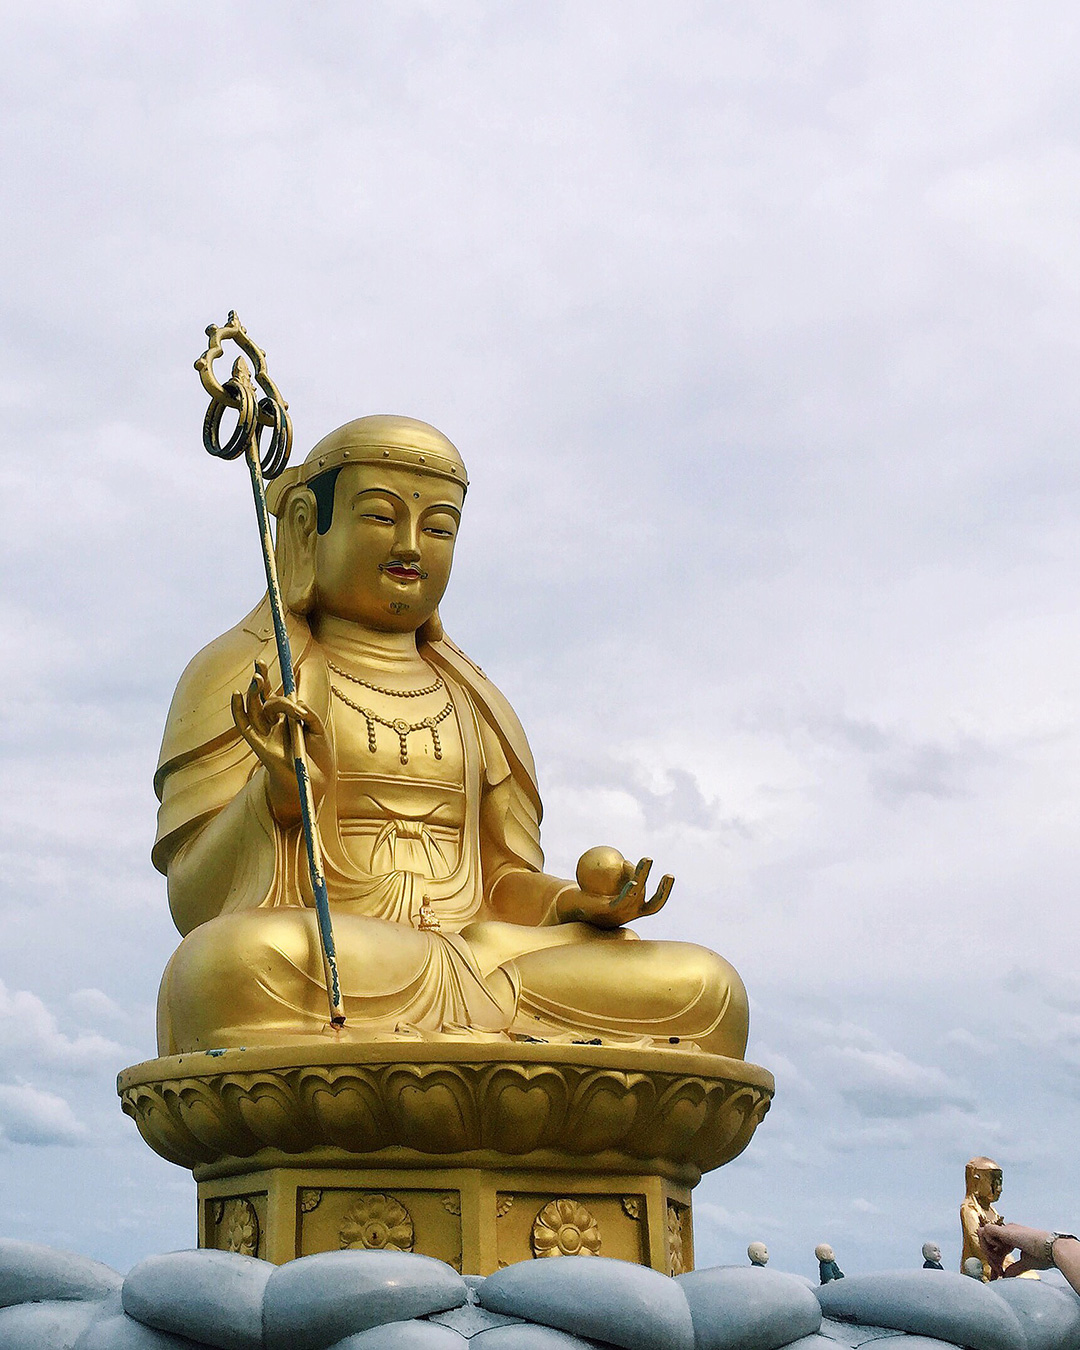 This golden Buddha sits right on the coastline while waves hit the shore right at its base.